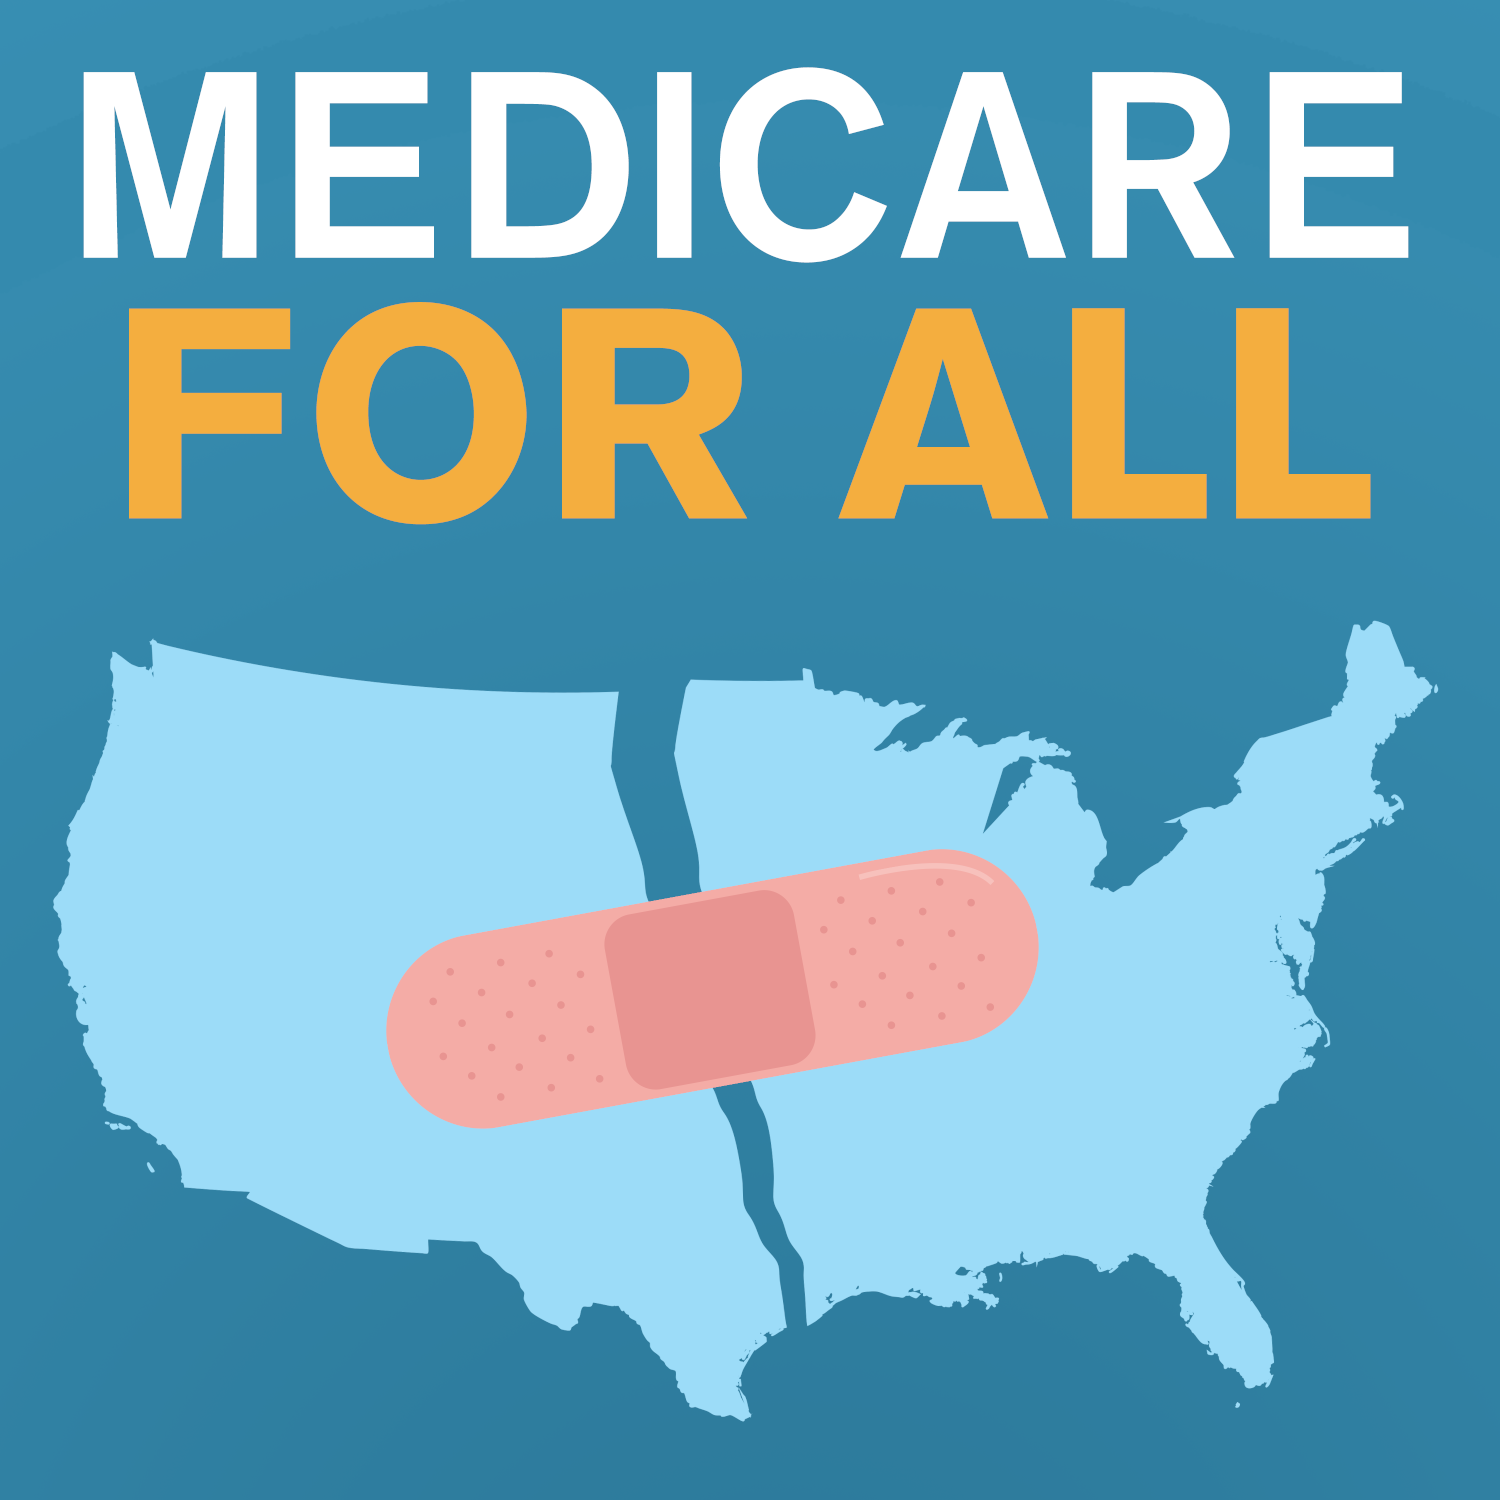 Medicare for all studies